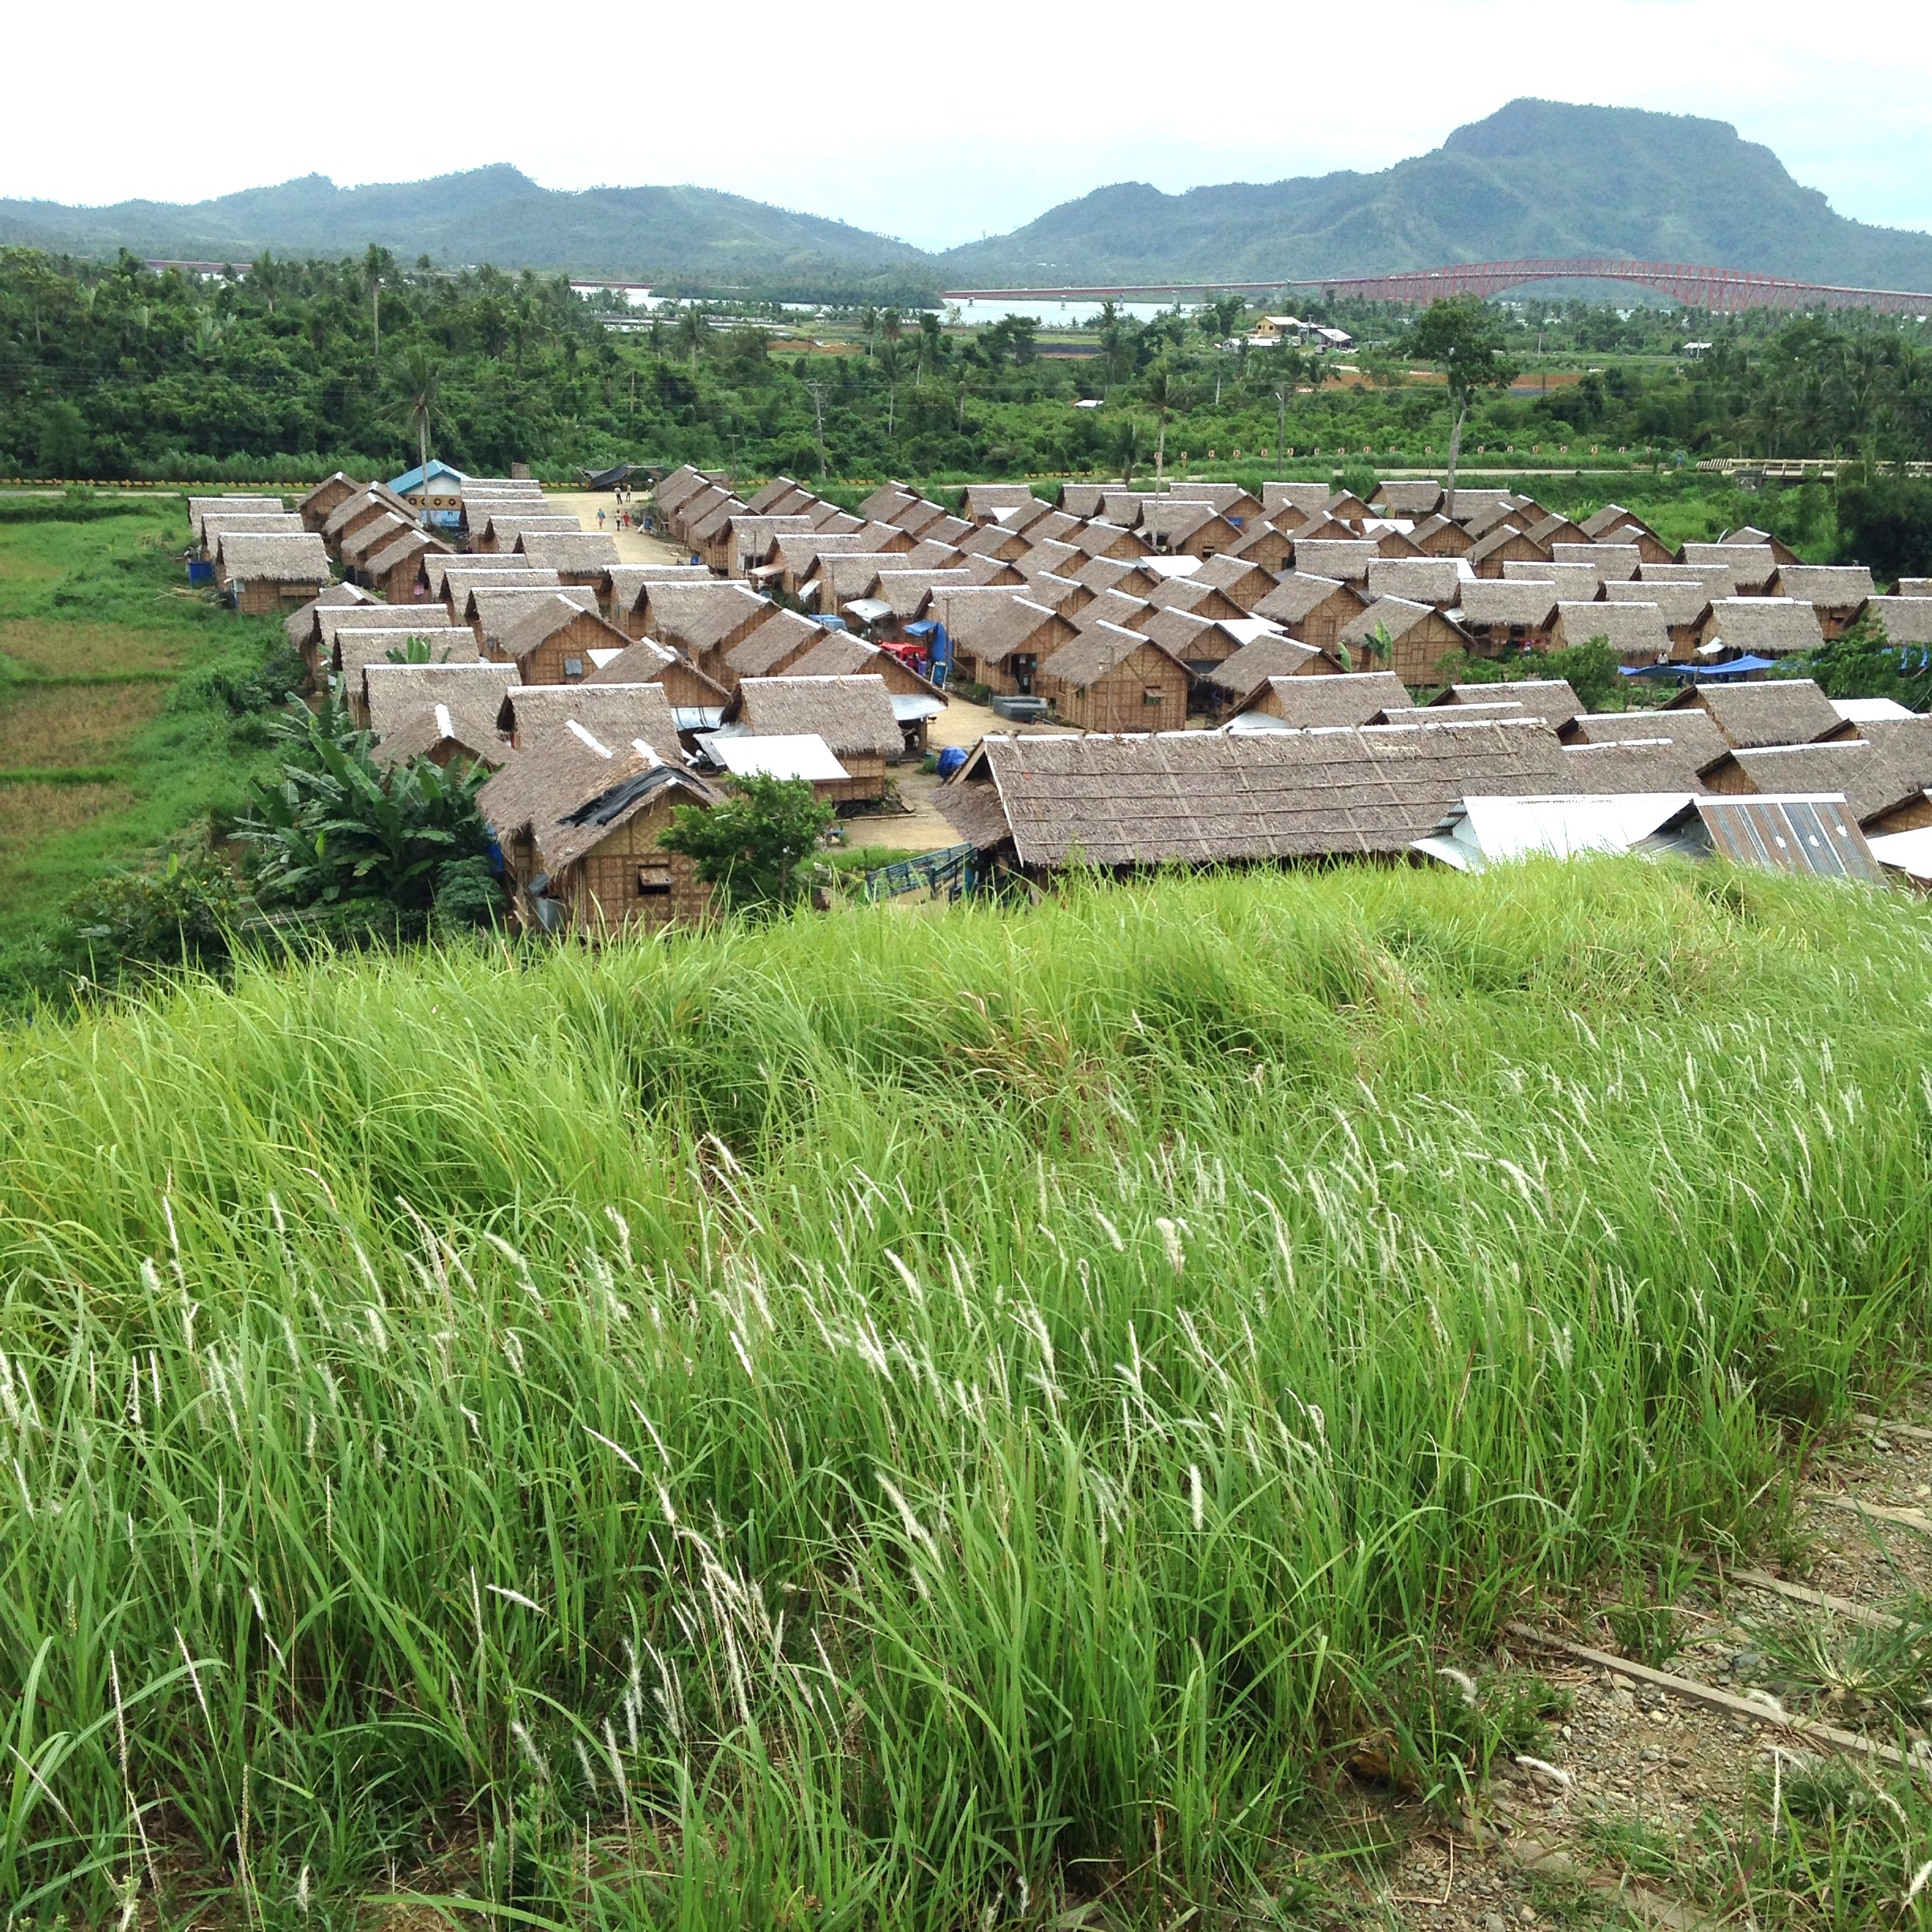 This relocated community about a 20 minute drive outside of Tacloban provides suitable housing for over 100 families. But livelihood that far from the city remains a challenge.